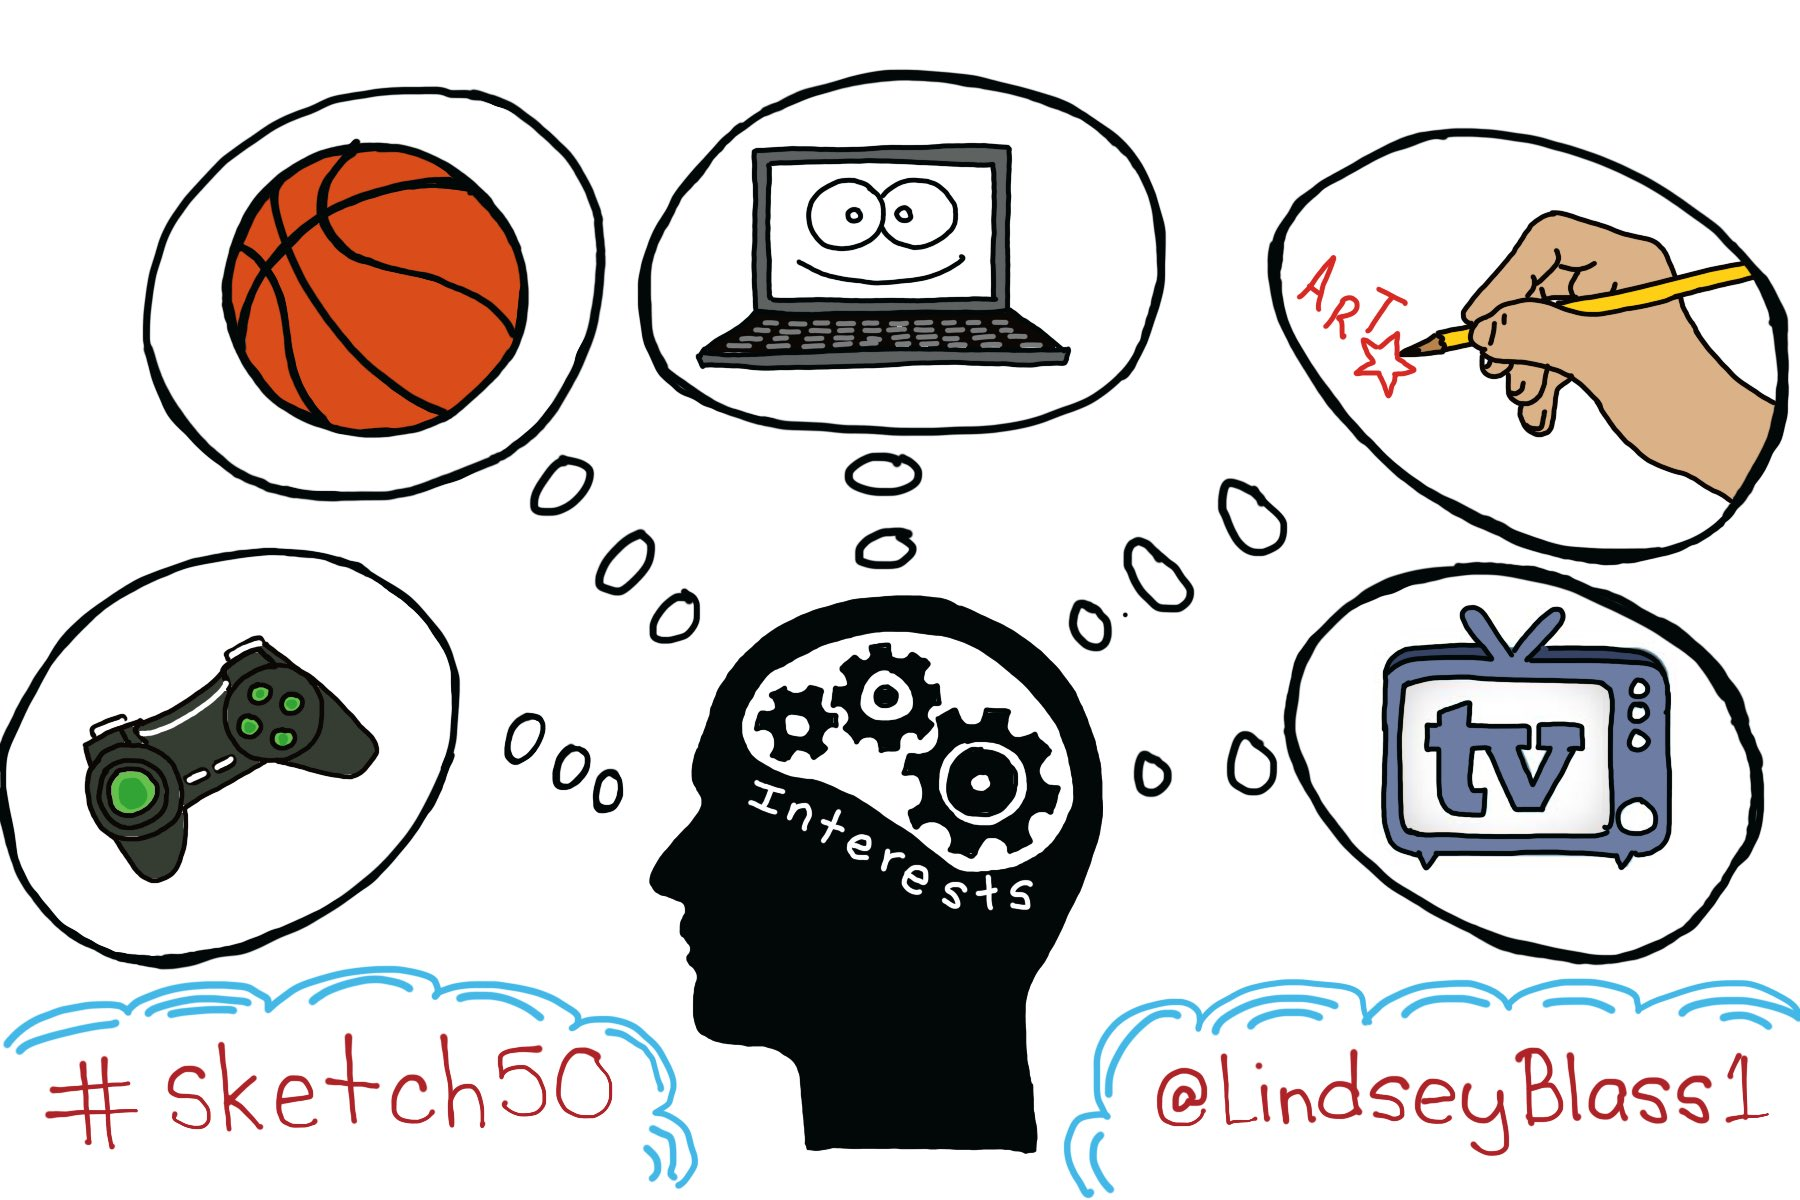 #sketch50 Day 9- Personalized Learning: Interests/ Hobbies. Join the movement! #growthmindset #connectedtl #cuechat #TOSAchat #CUSDrockstar https://t.co/Jxamcz9iZc